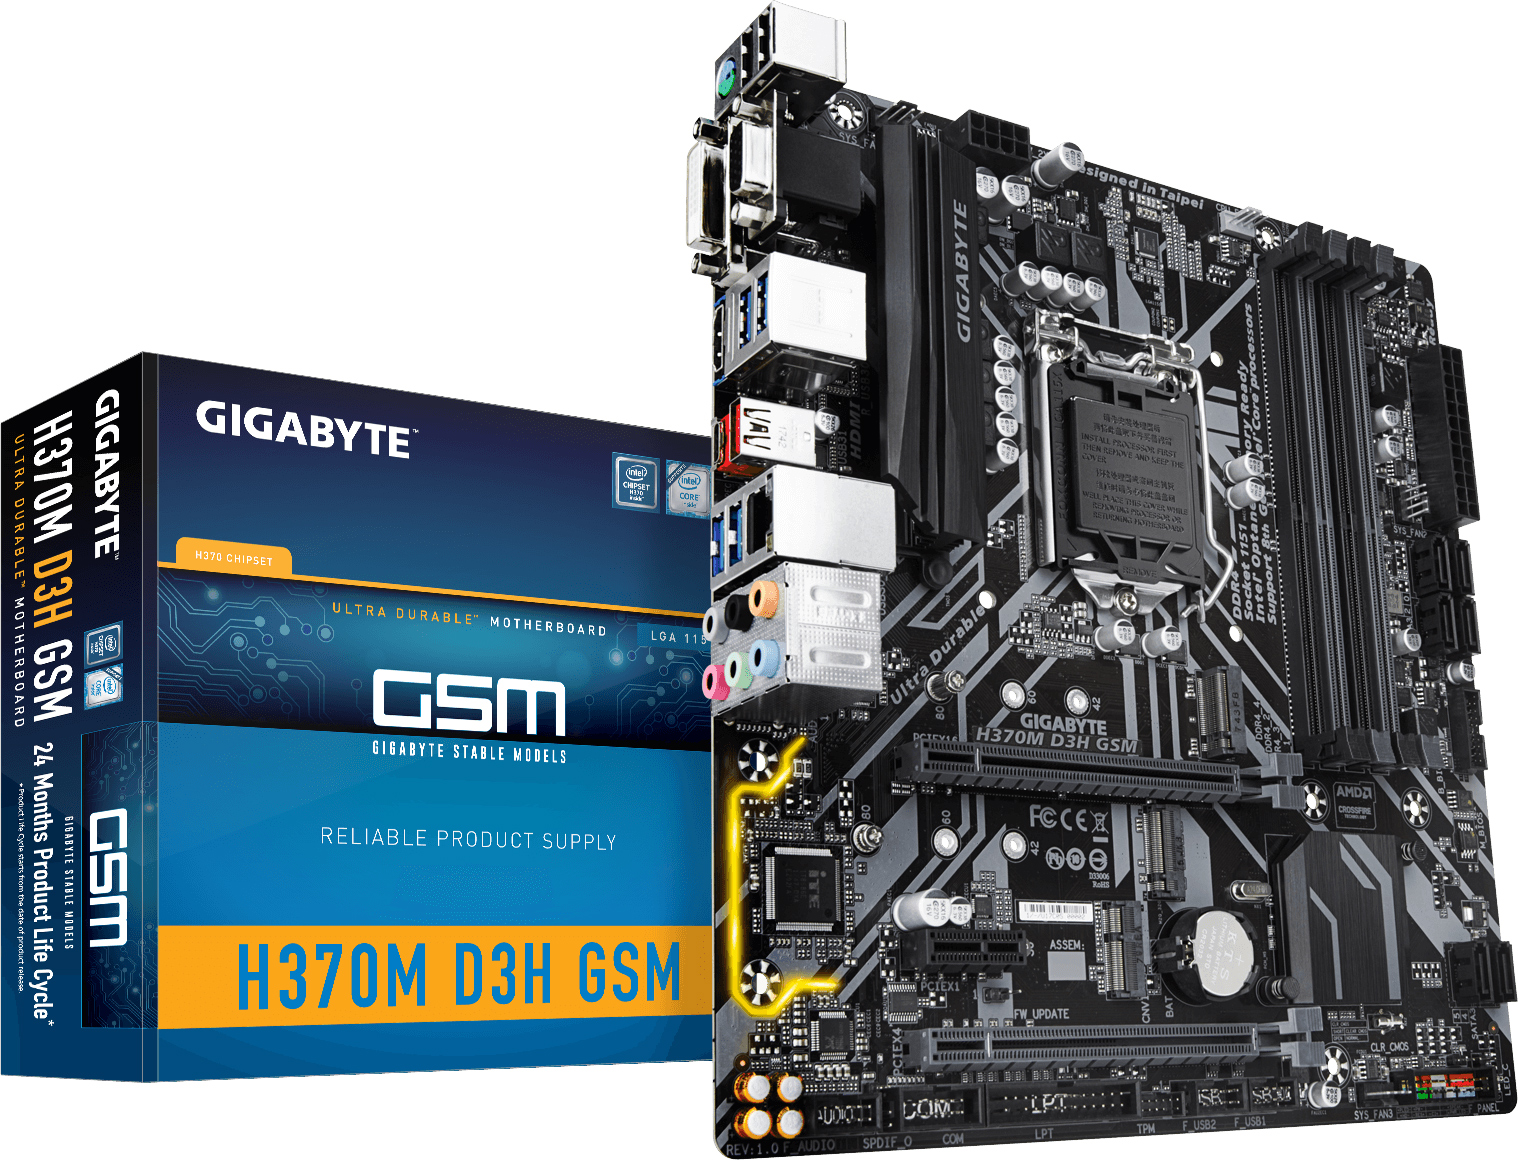 GIGABYTE Adds Support for Intel's 9th Gen Core Processors to